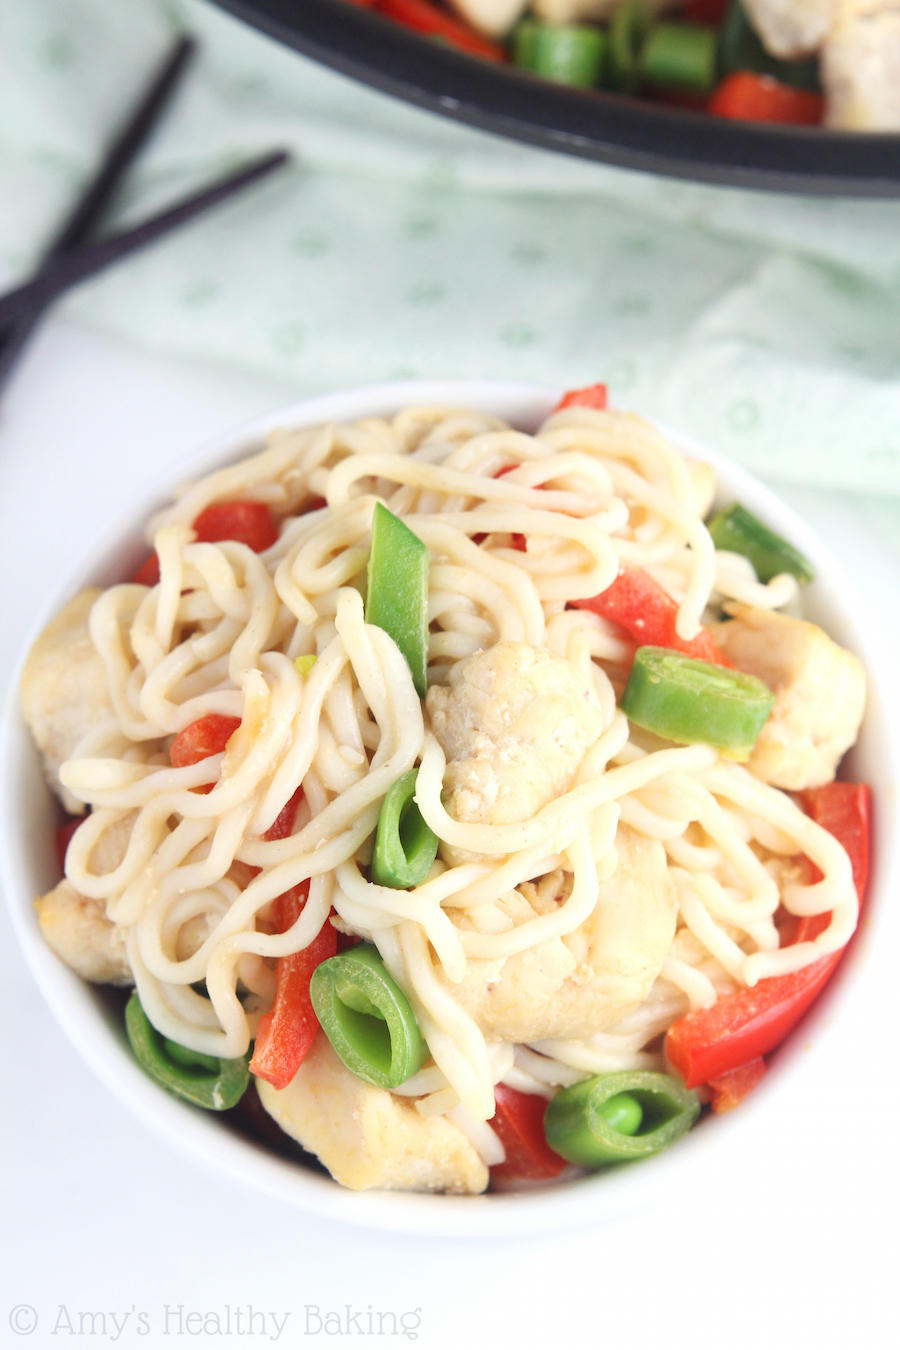 Low-Carb Chicken Peanut Soy Noodles -- an easy, flavorful meal with 29g+ of protein that's ready in just 15 minutes!